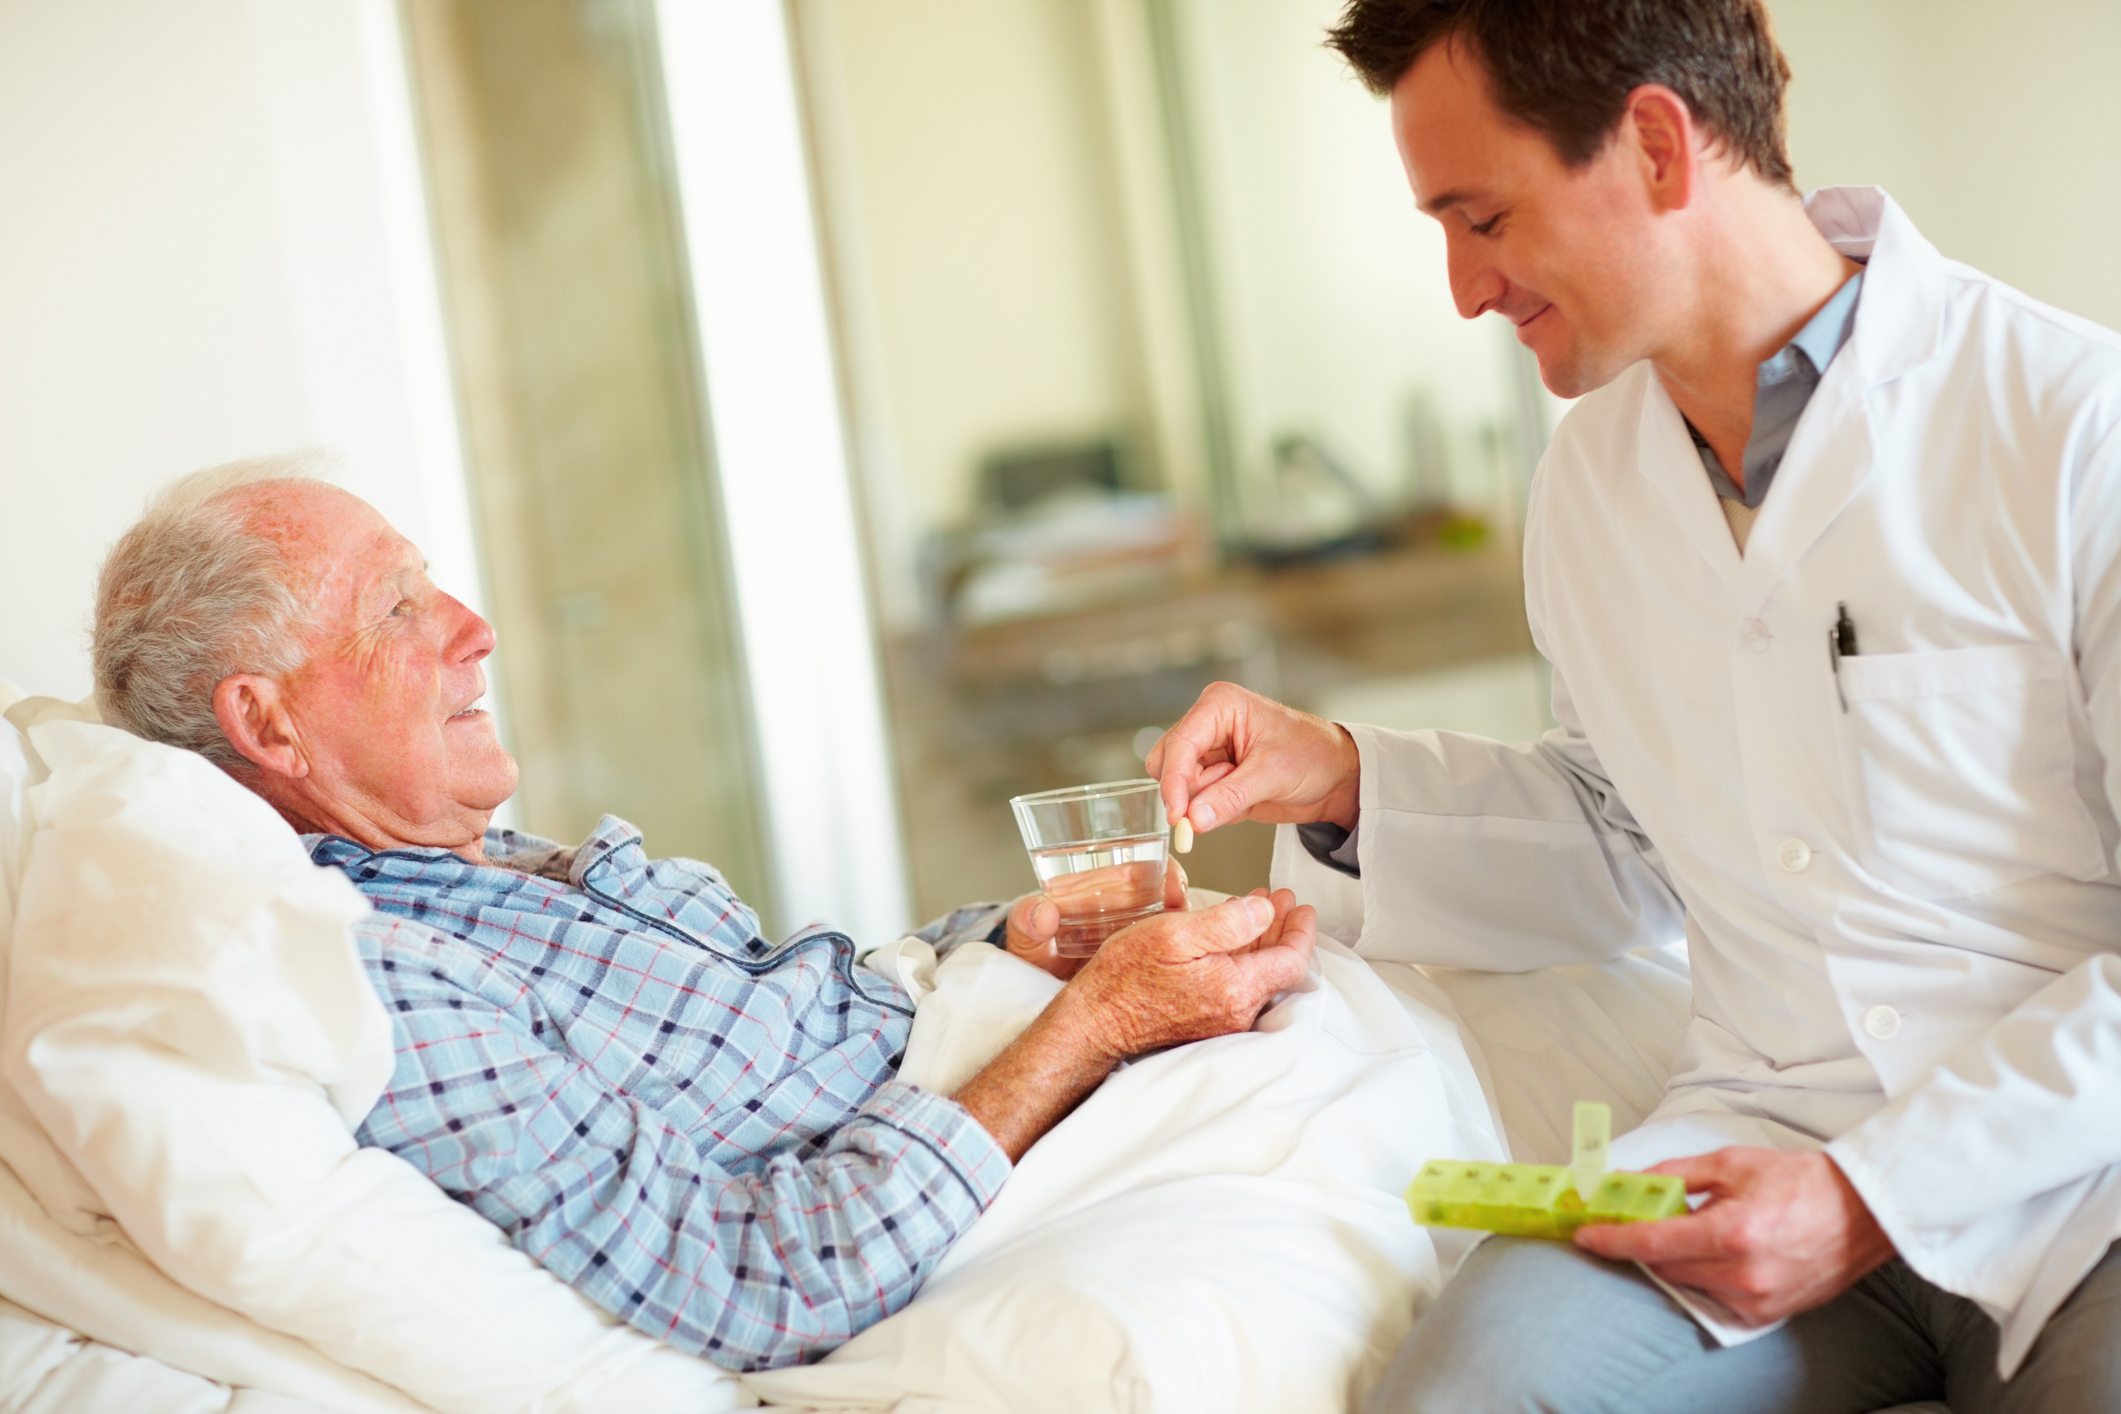 16 Marketing Ideas For Home Care & Service Business